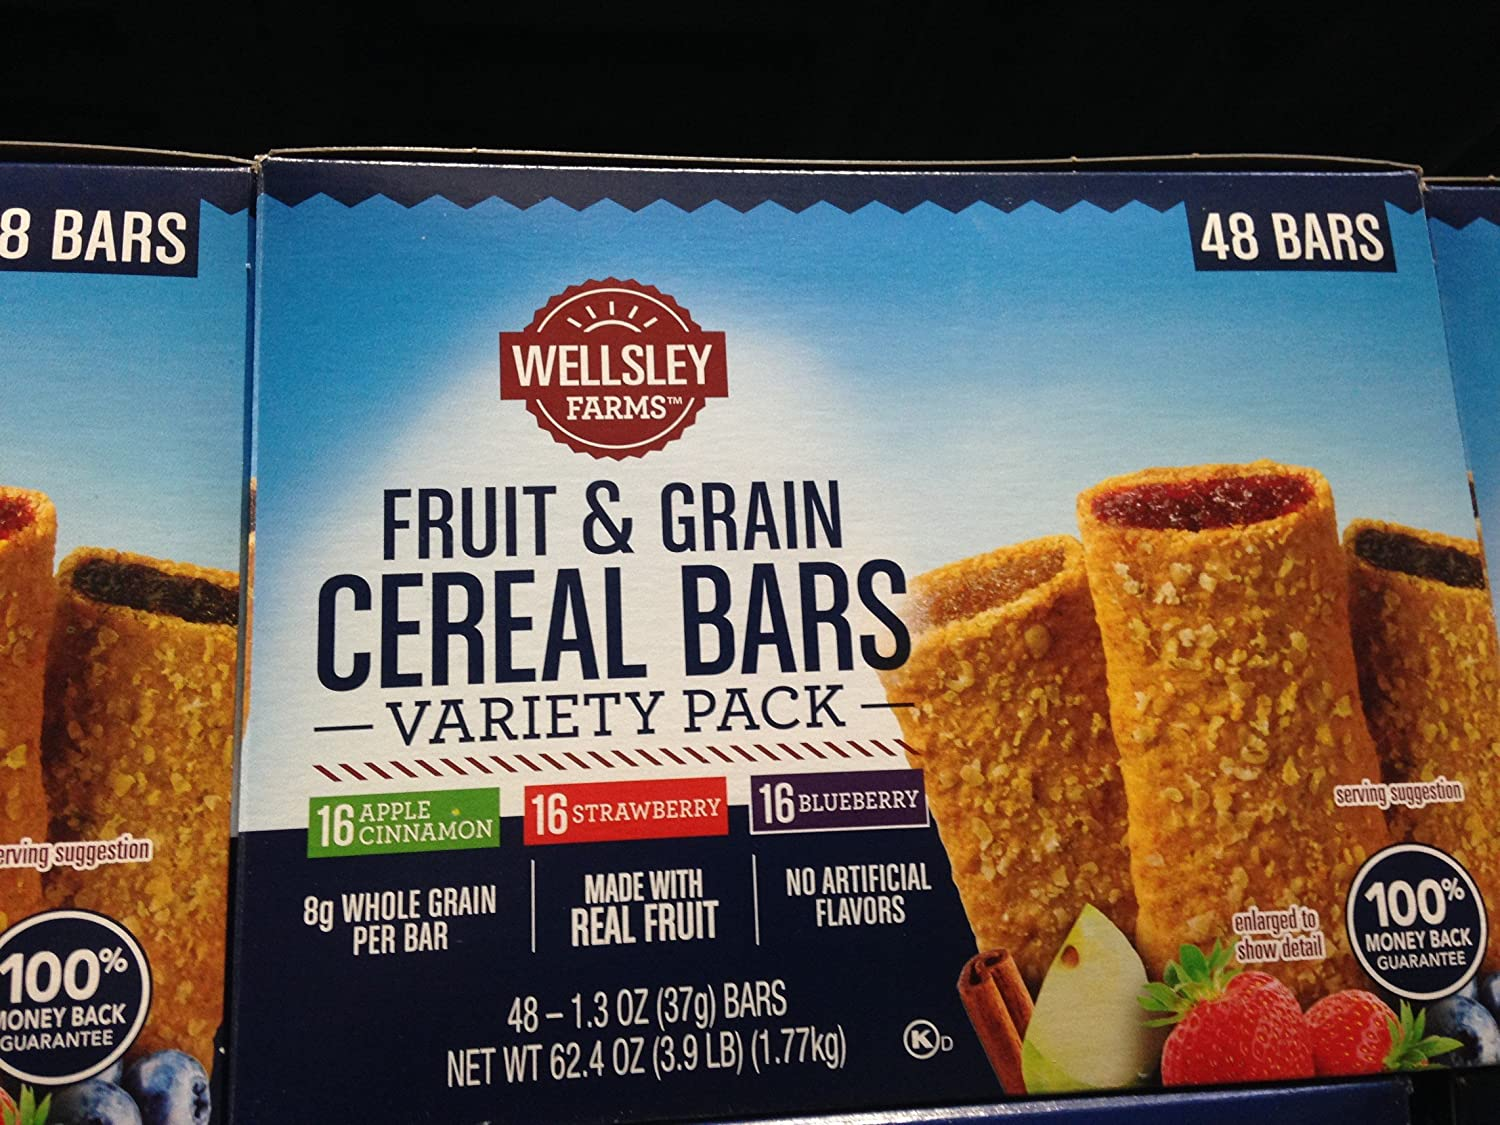 Wellsley Farms 4 years warranty fruit grain variety 6 48 of pack ct. Limited price